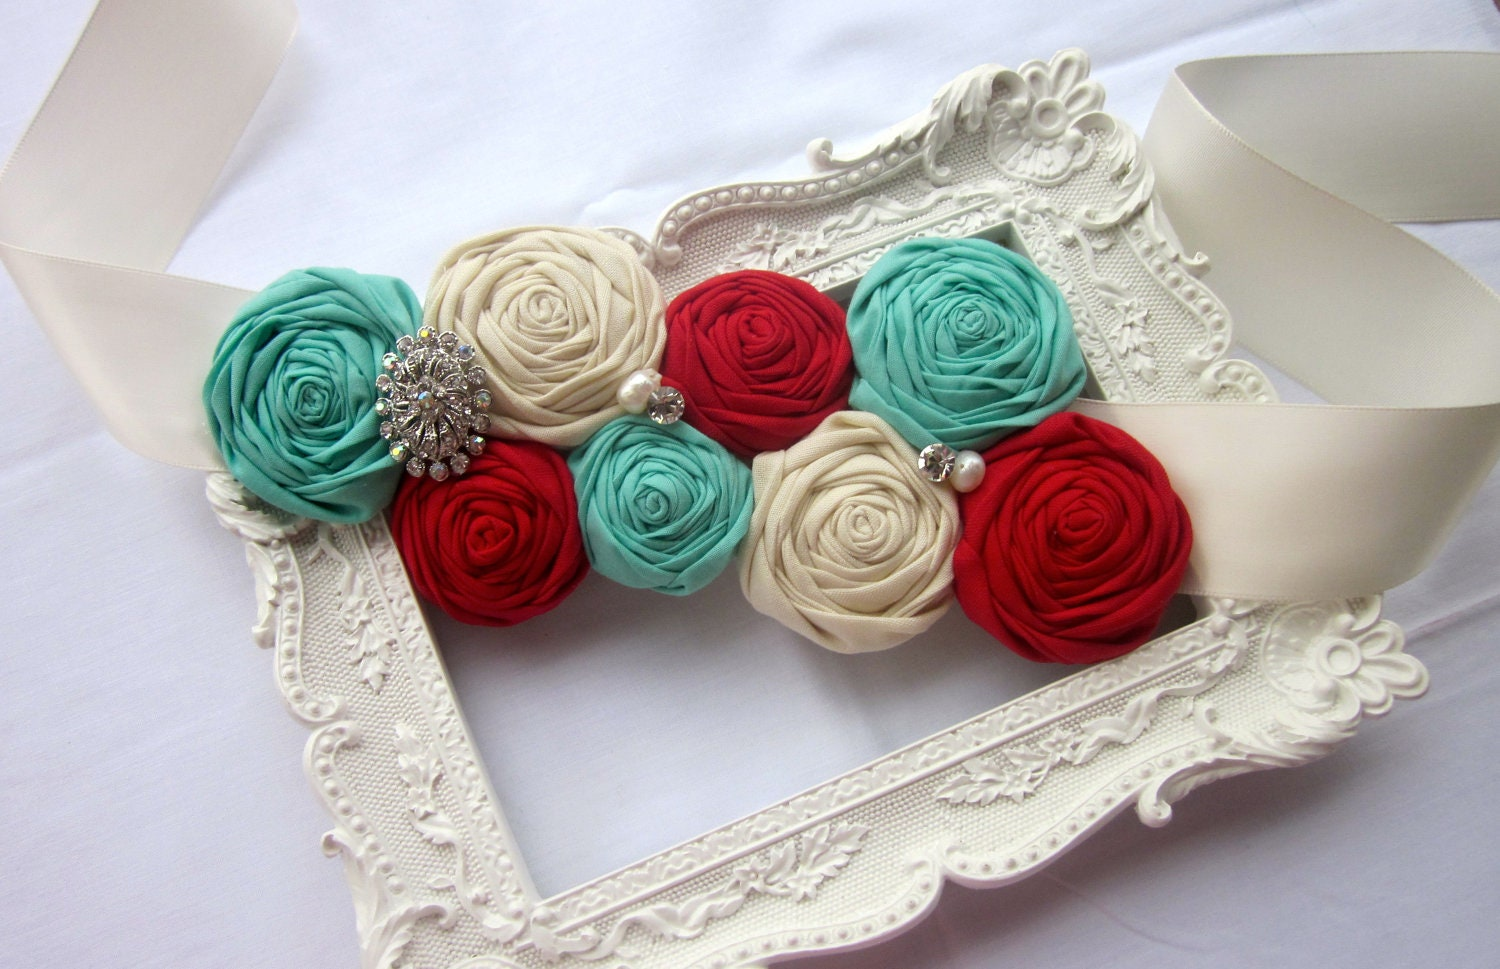 Rolled Rosette Sash for Bride, Bridesmaids, Flower Girls, or Maternity Shoots in Red, Tiffany Blue, and Ivory